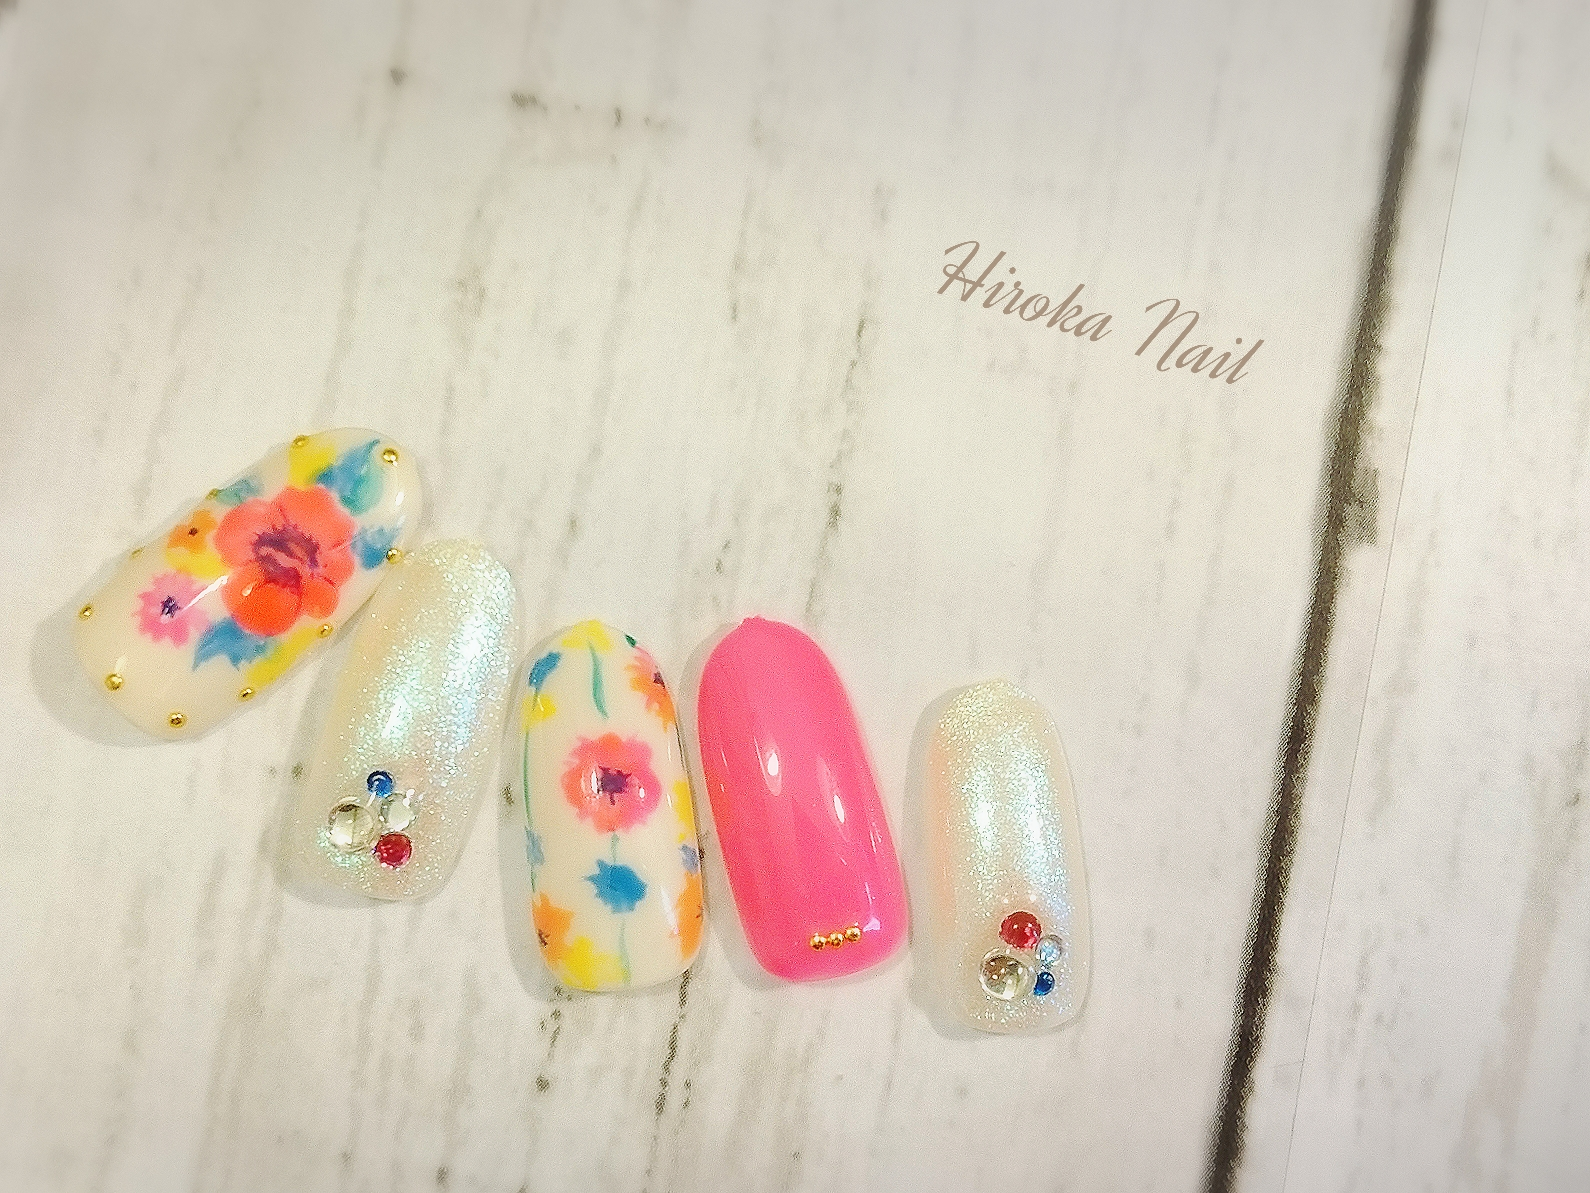 CUTE JAPANESE NAIL ART DESIGNS - Richmond BC Best Hair Salons | Hair ...